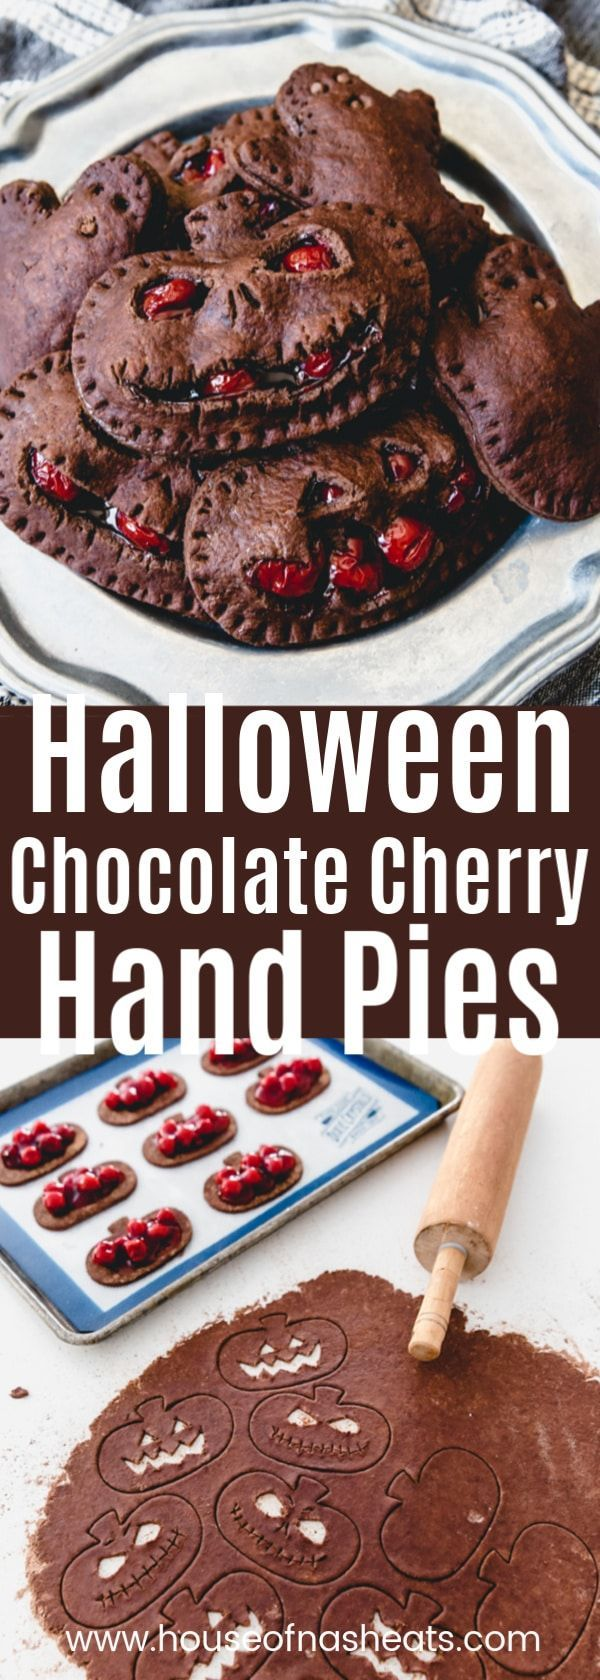 Halloween Chocolate Cherry Hand Pies